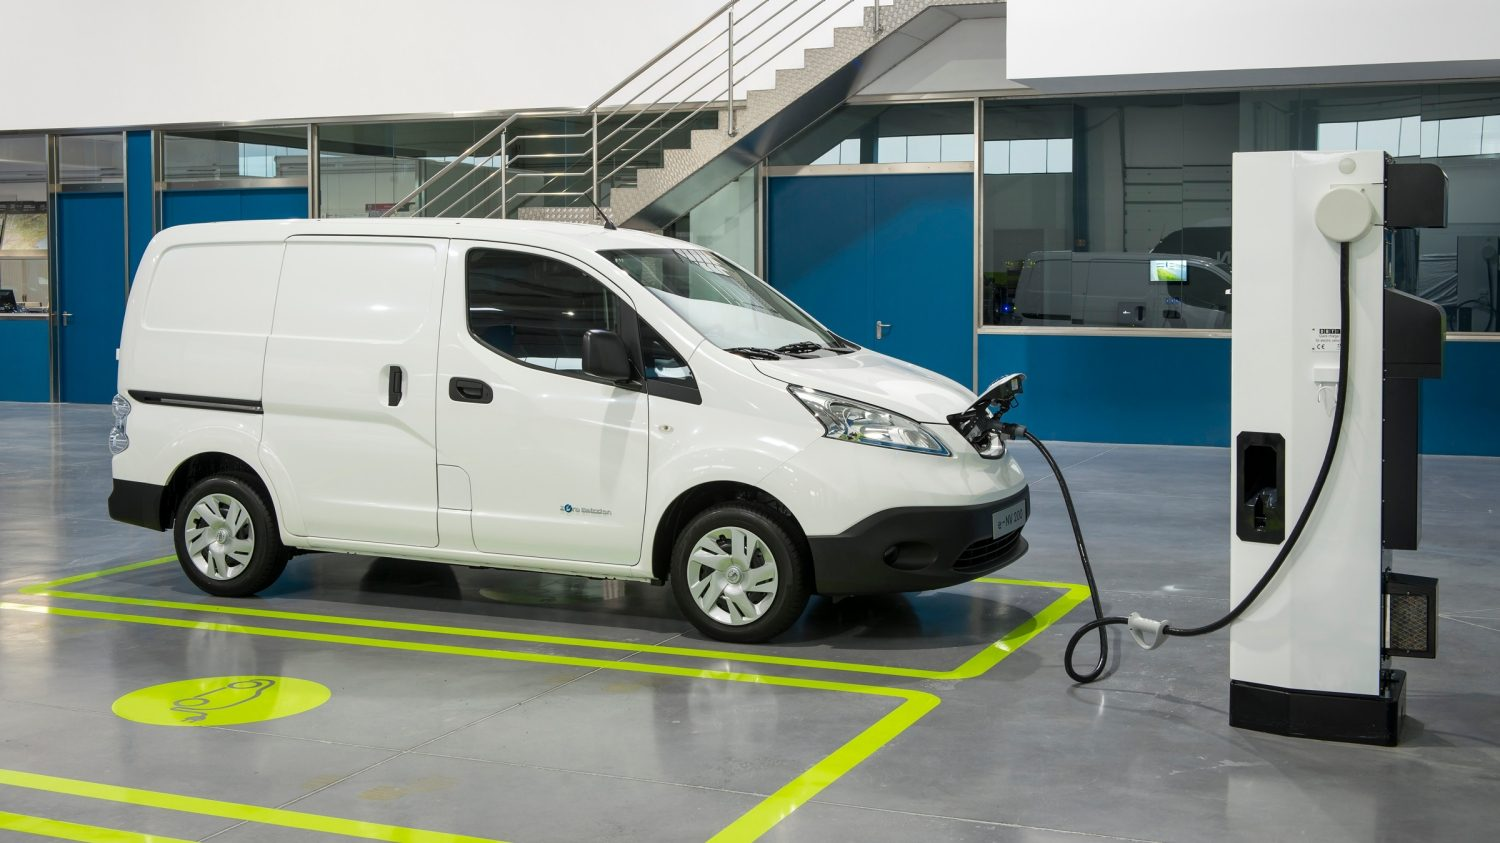 Nissan e-NV200 - Ricarica in garage